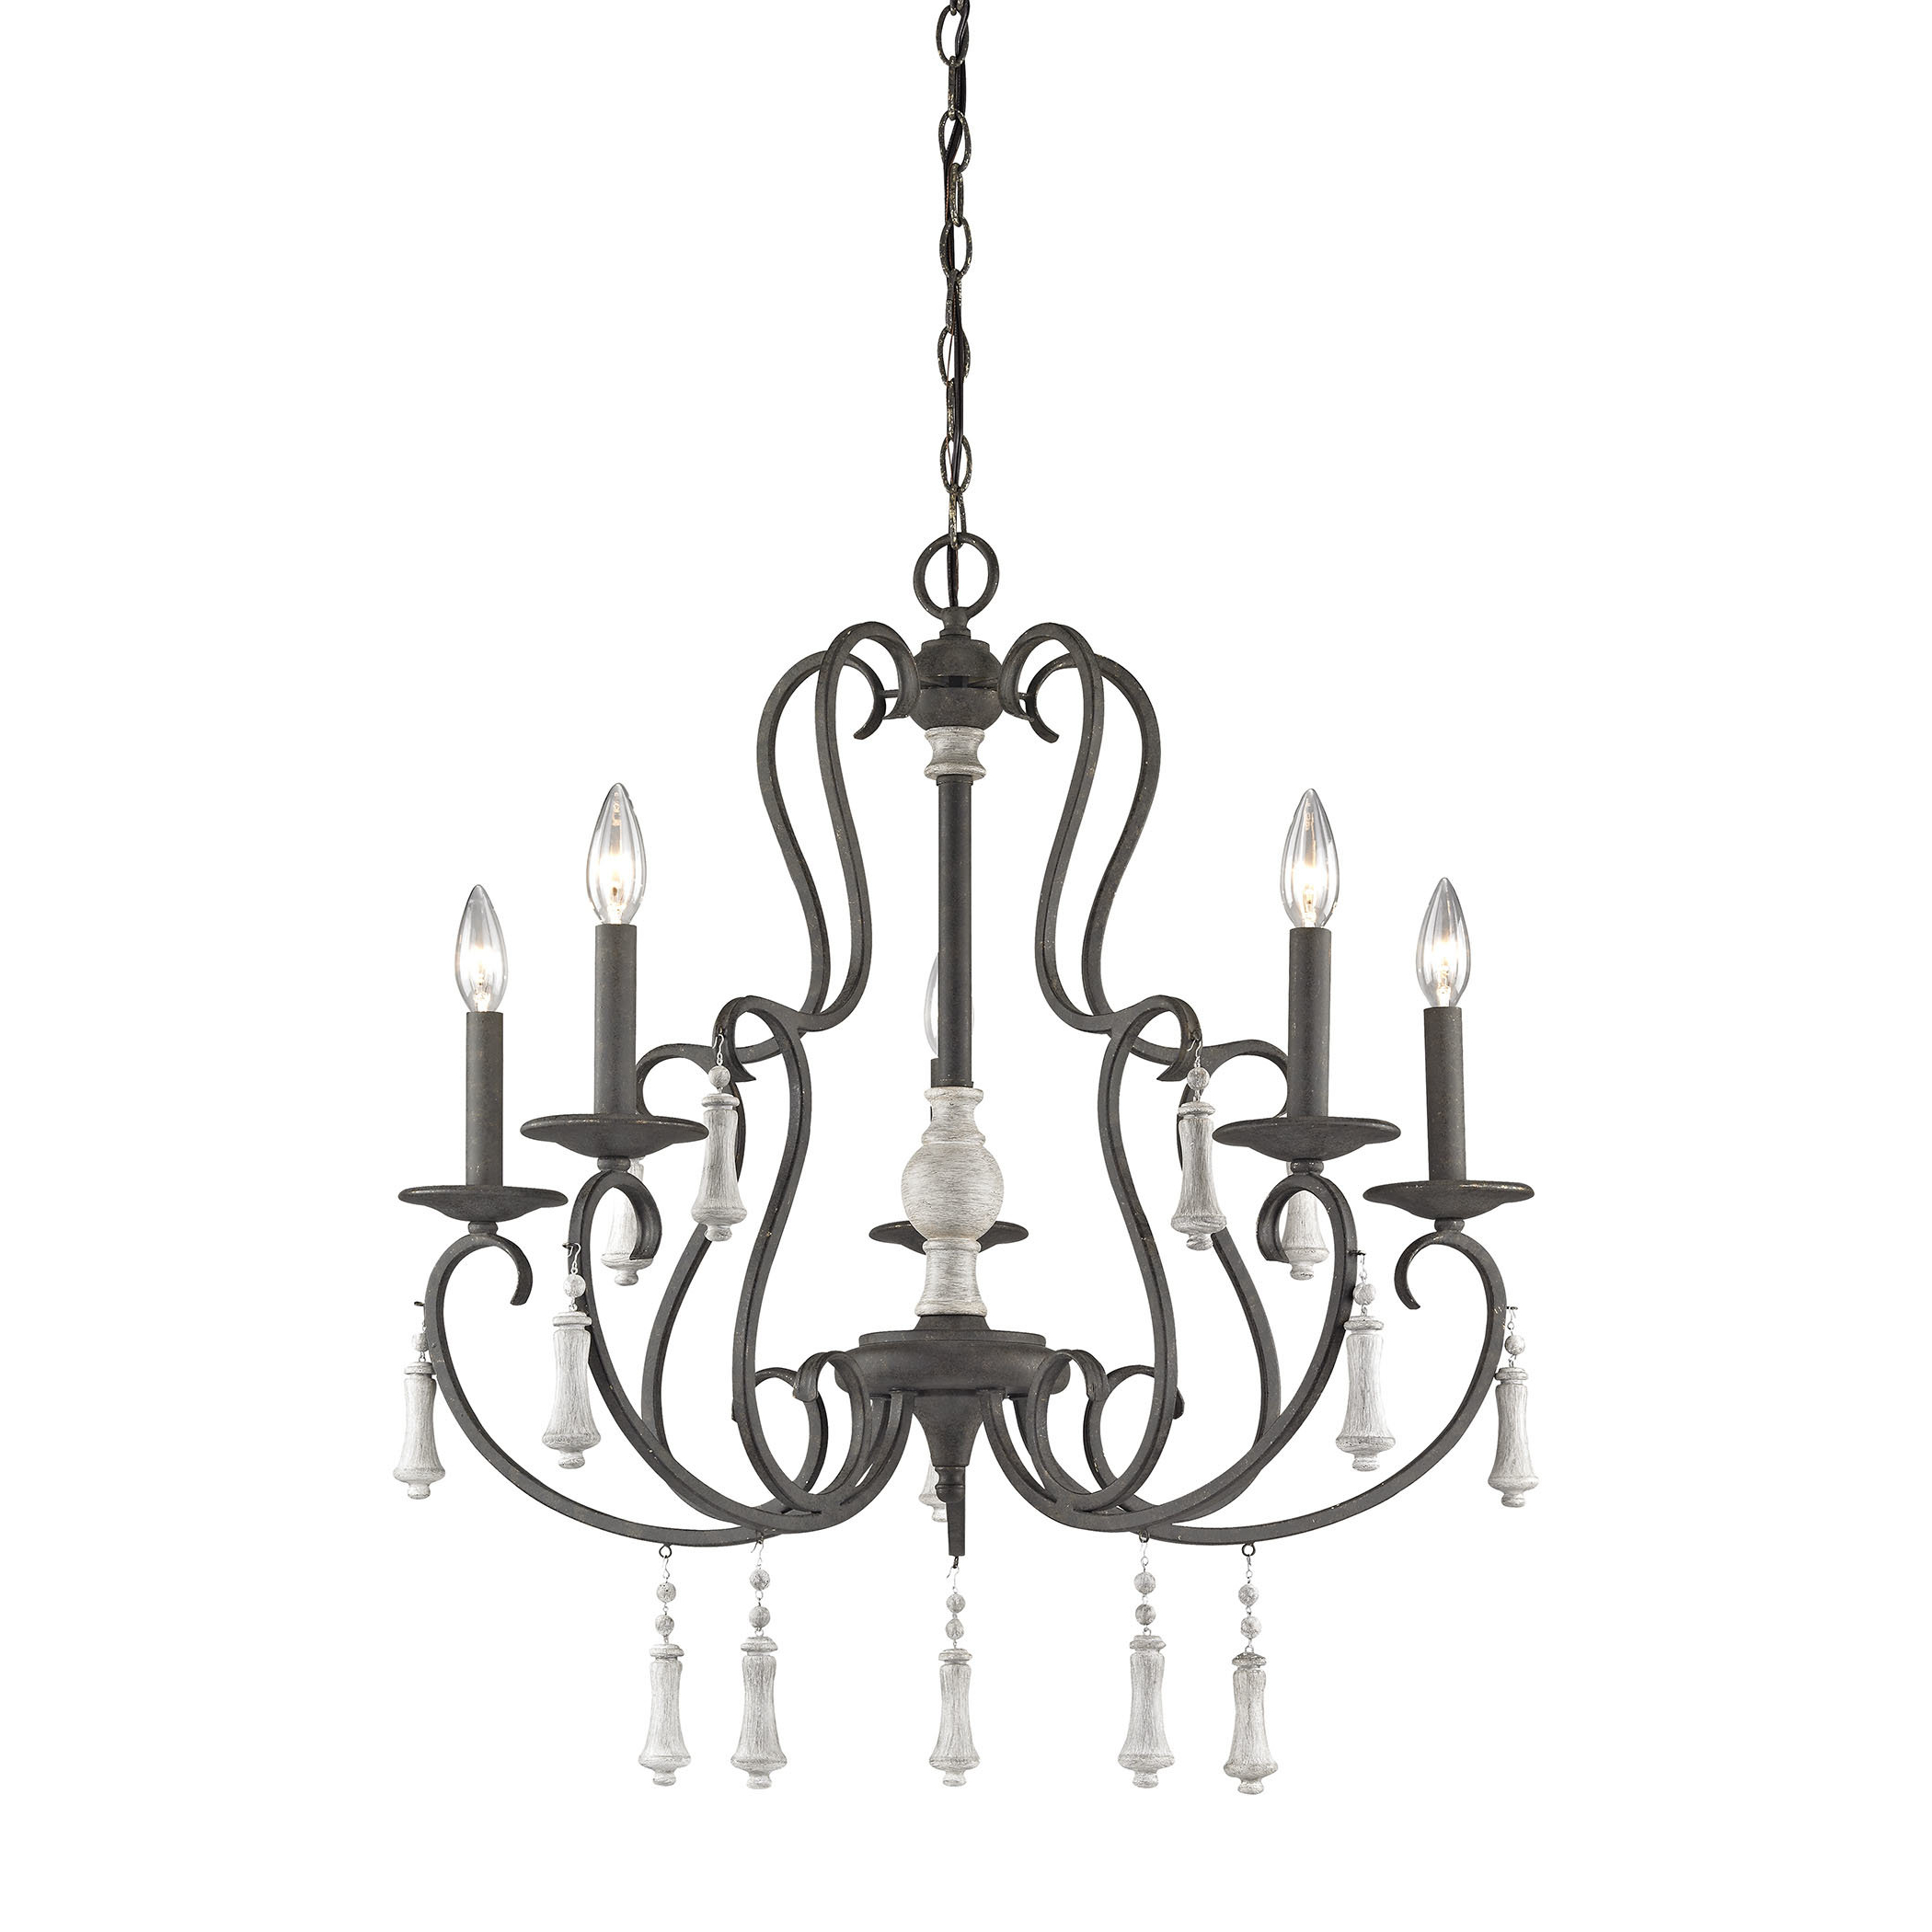 Corneau 5 Light Chandeliers Throughout Fashionable Pollitt 5 Light Chandelier (View 4 of 20)